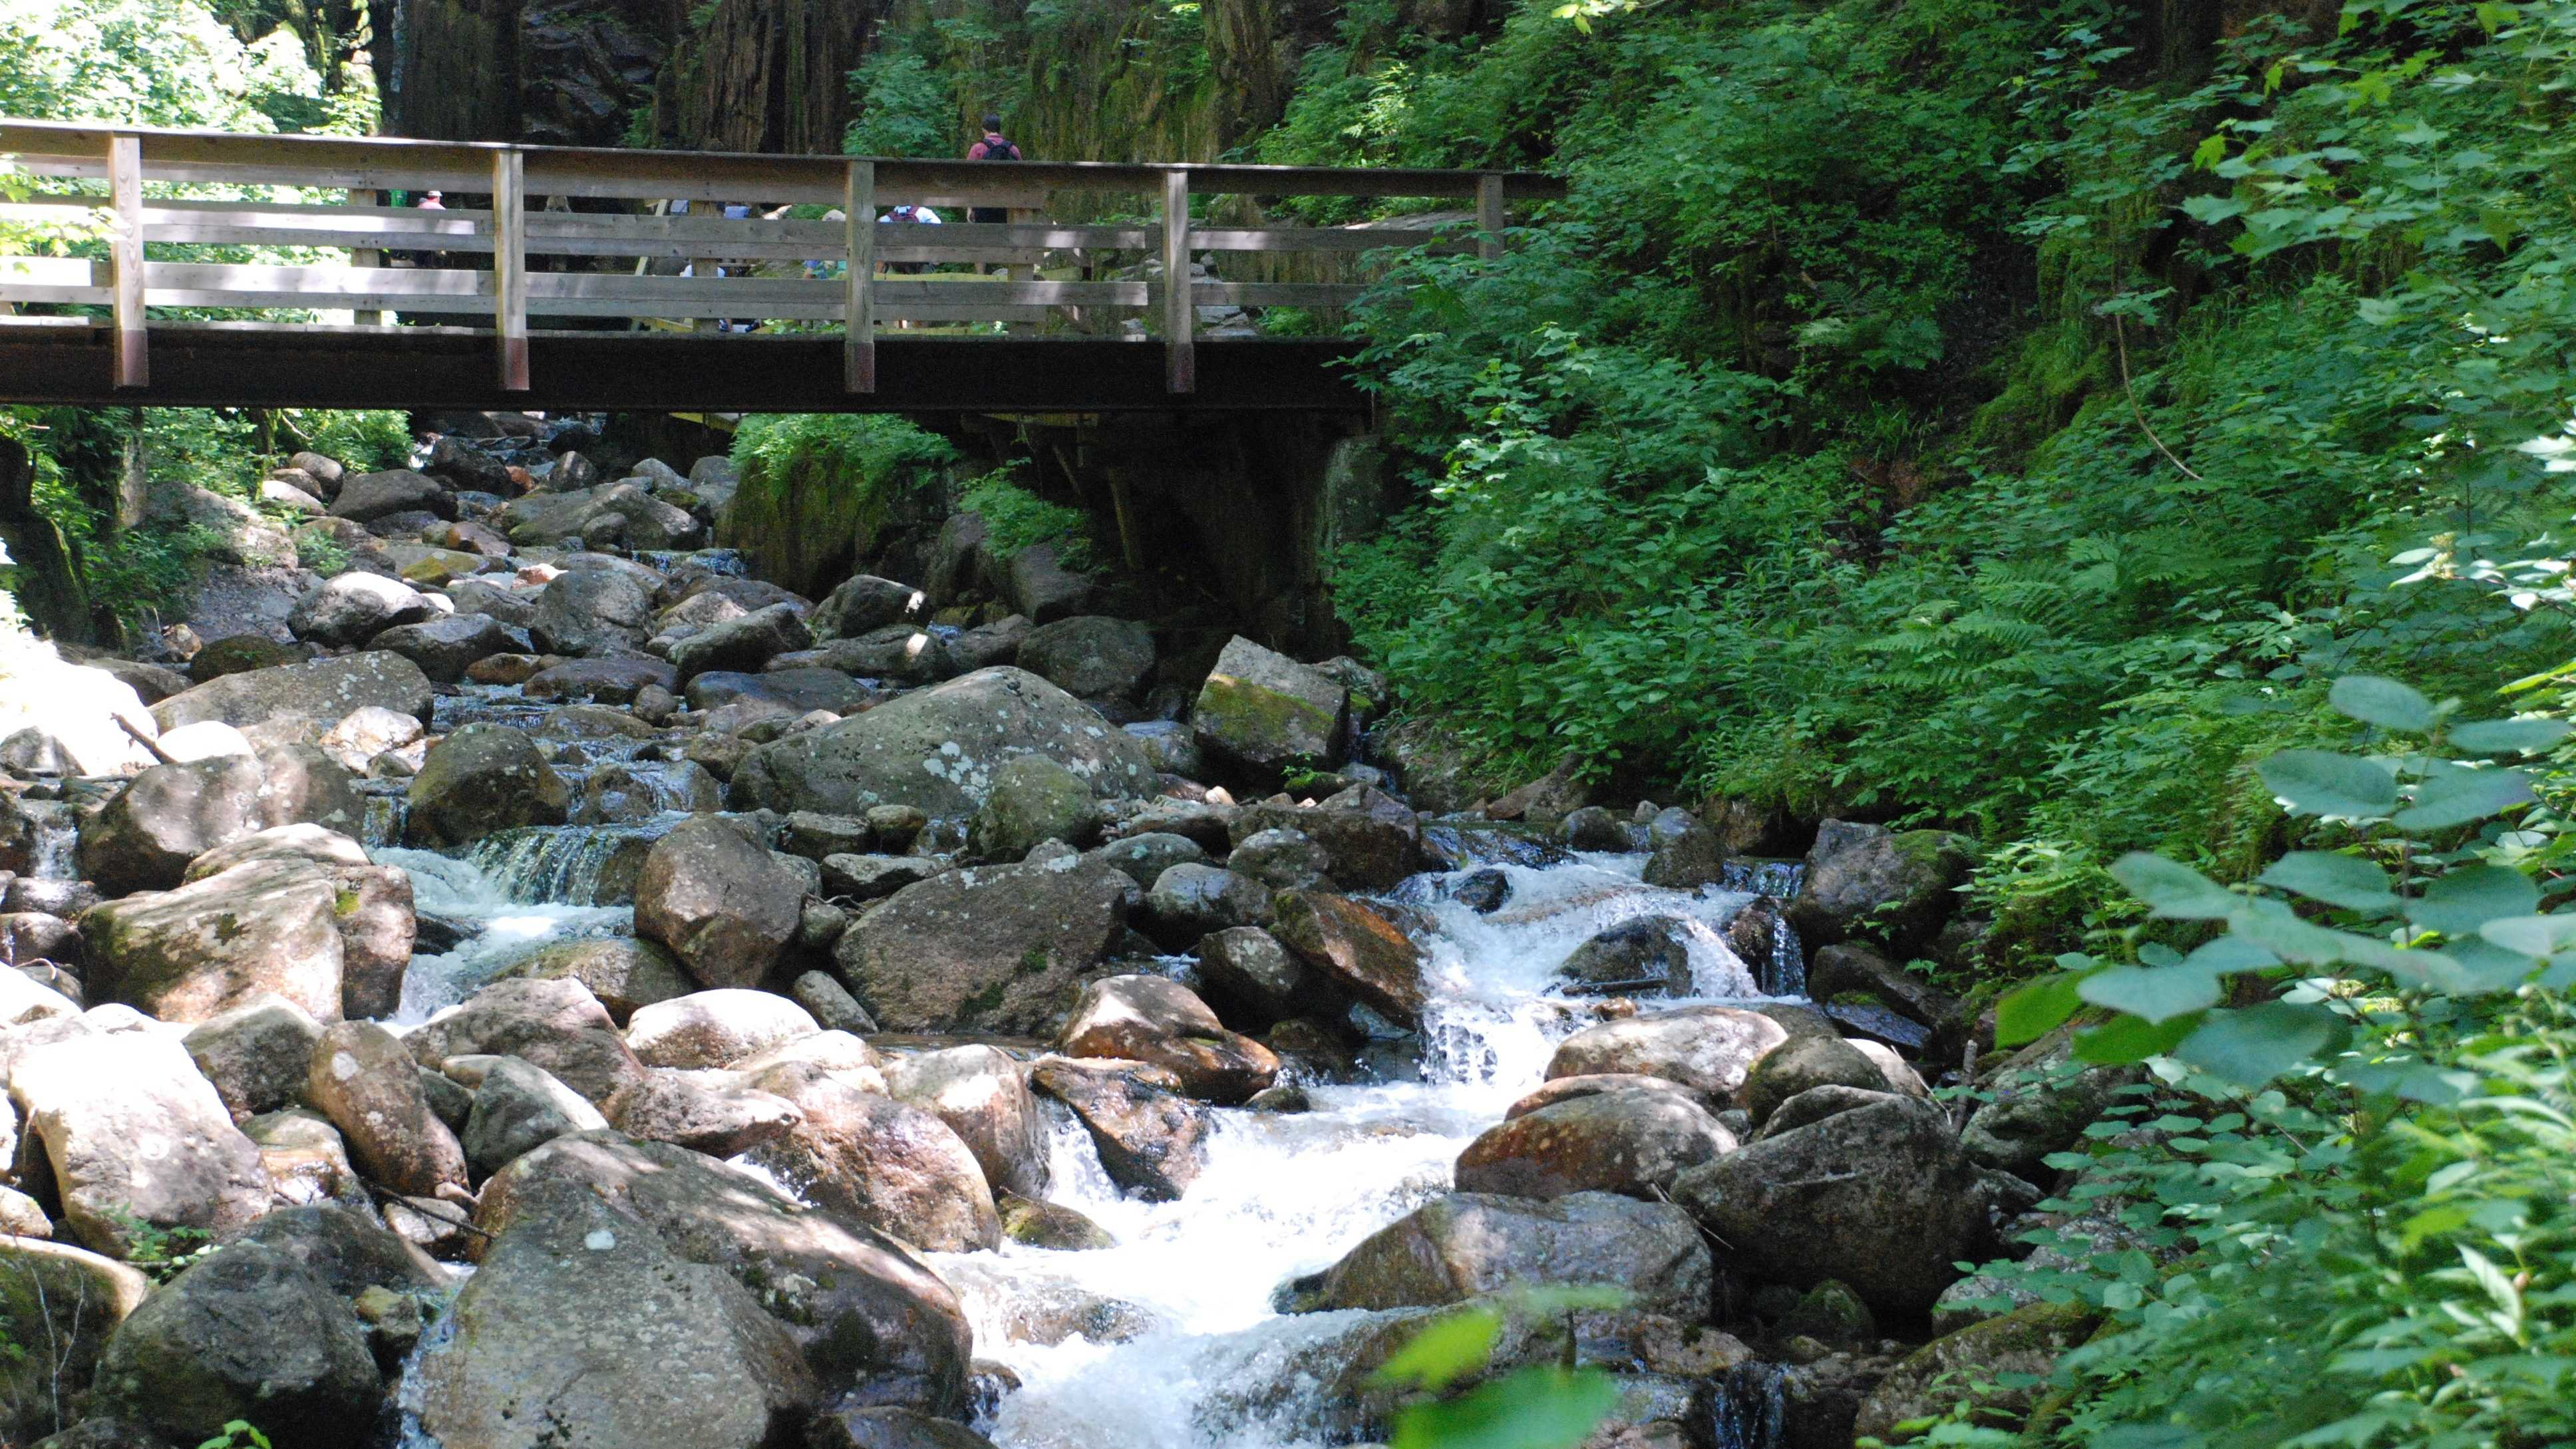 The Flume is a natural gorge at the base of Mount Liberty.